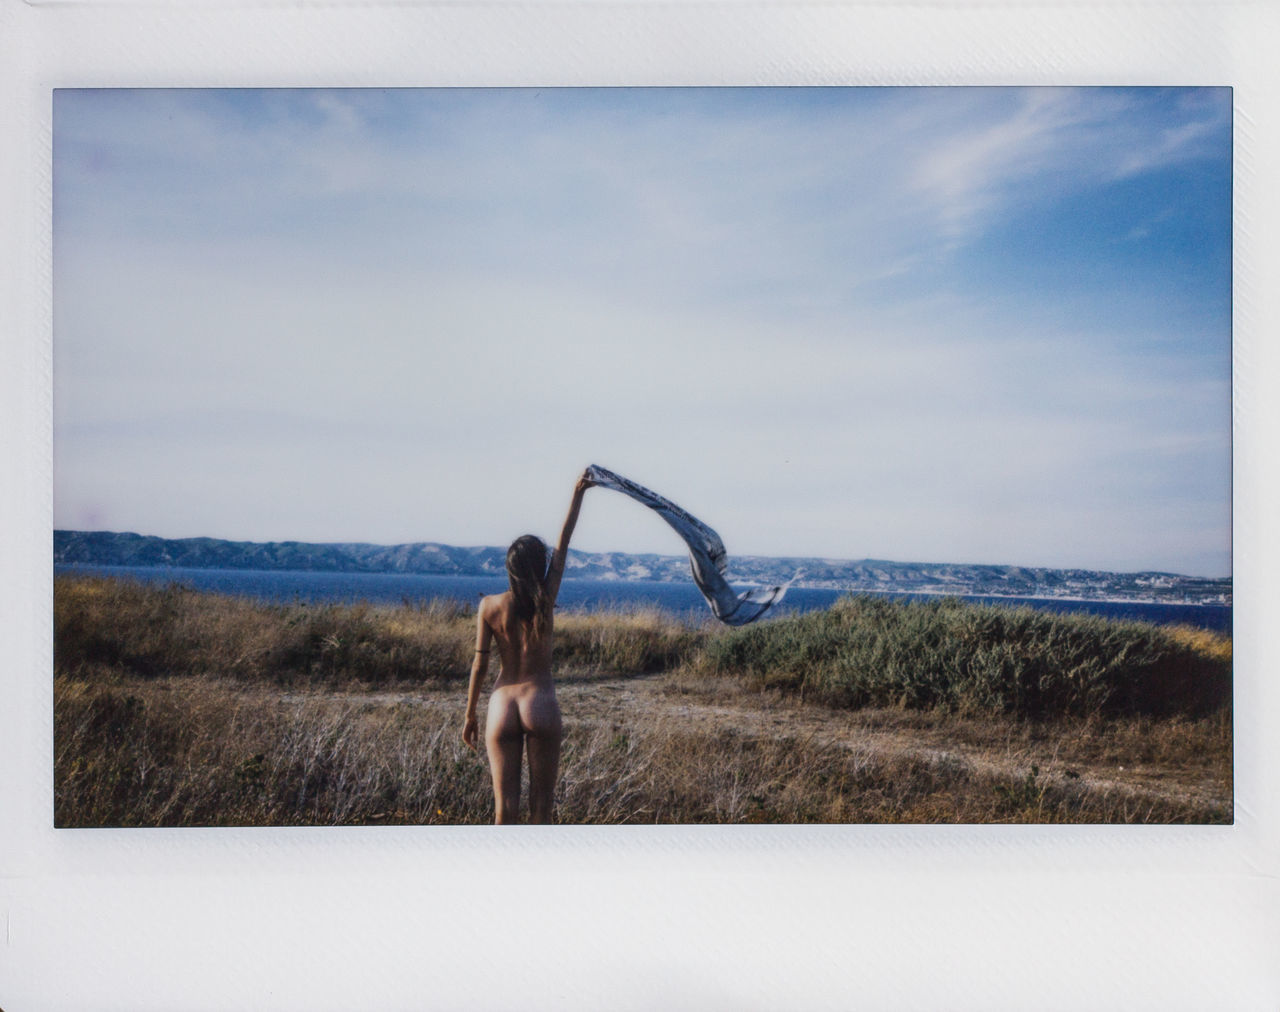 Summer Never Ends Adventure Beauty Beauty In Nature Day Girl Goodbye Hippie Hippielife Hipster Instax Landscape Lifestyle Lifestyles Nature Naturelovers Outdoors Polaroid Sea And Sky Summer Summer Views Young Young Adult EyeEmNewHere Nüde Art. Young Women